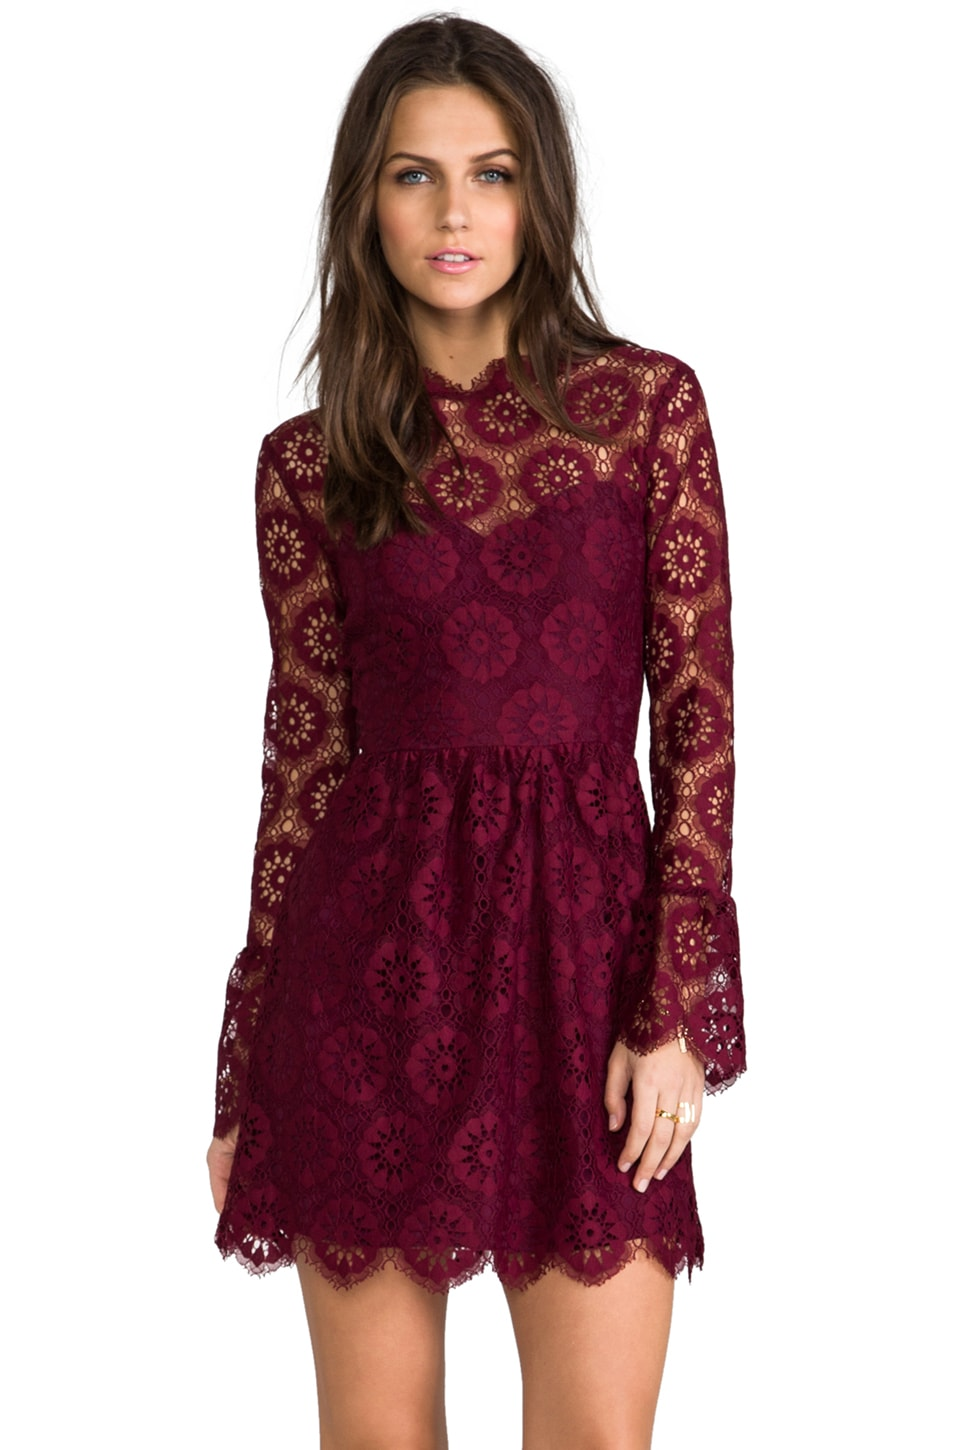 Dolce Vita Pisaro Lace Dress in Raspberry